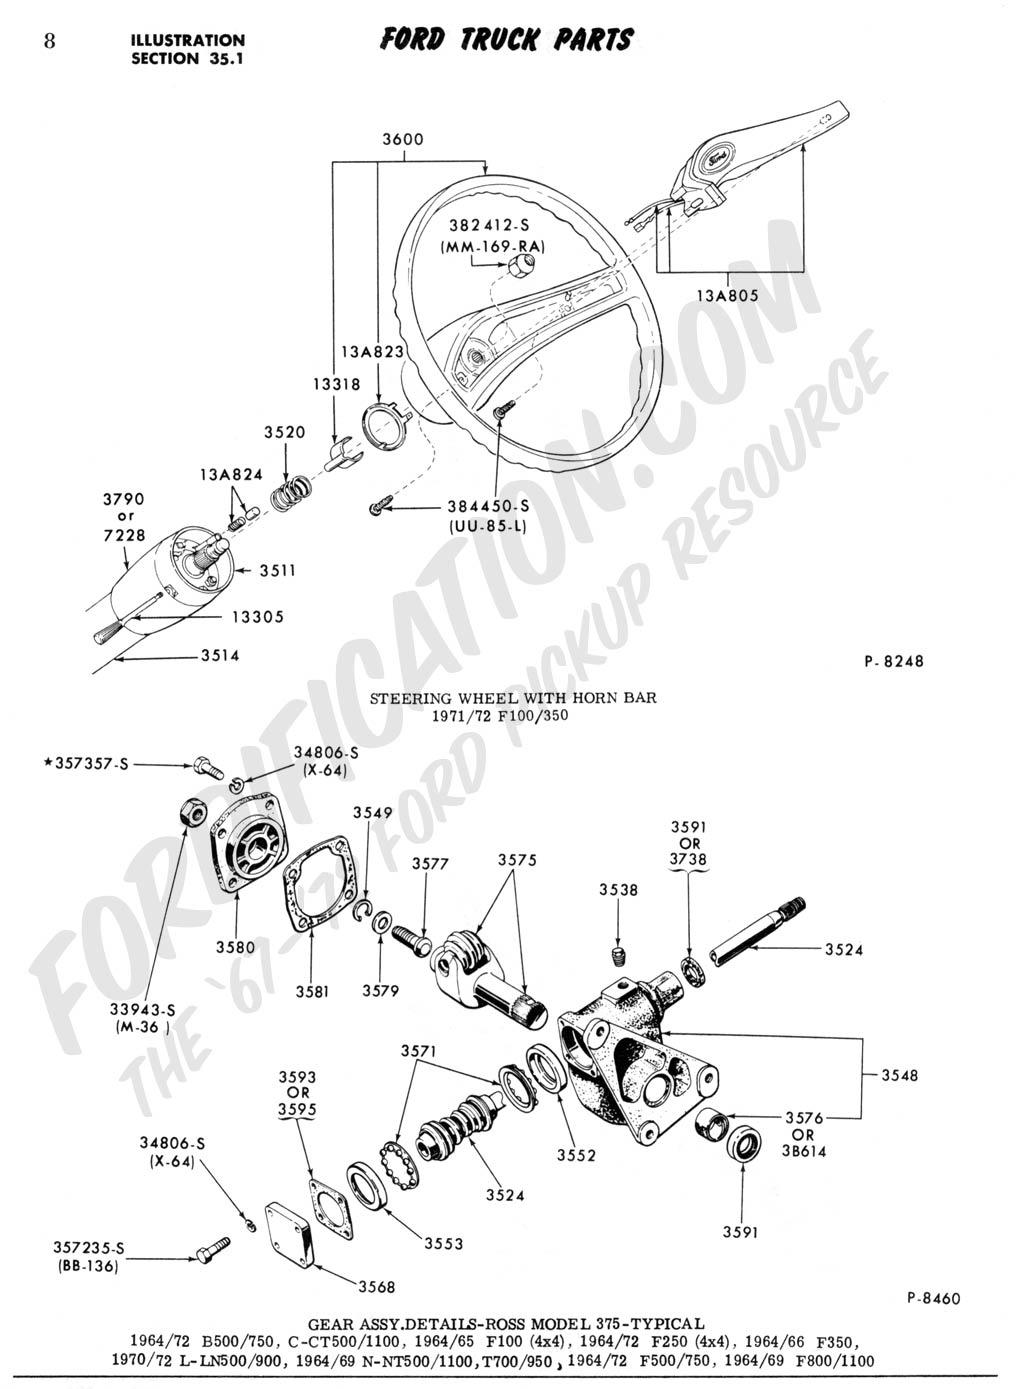 Ford F100 Power Steering